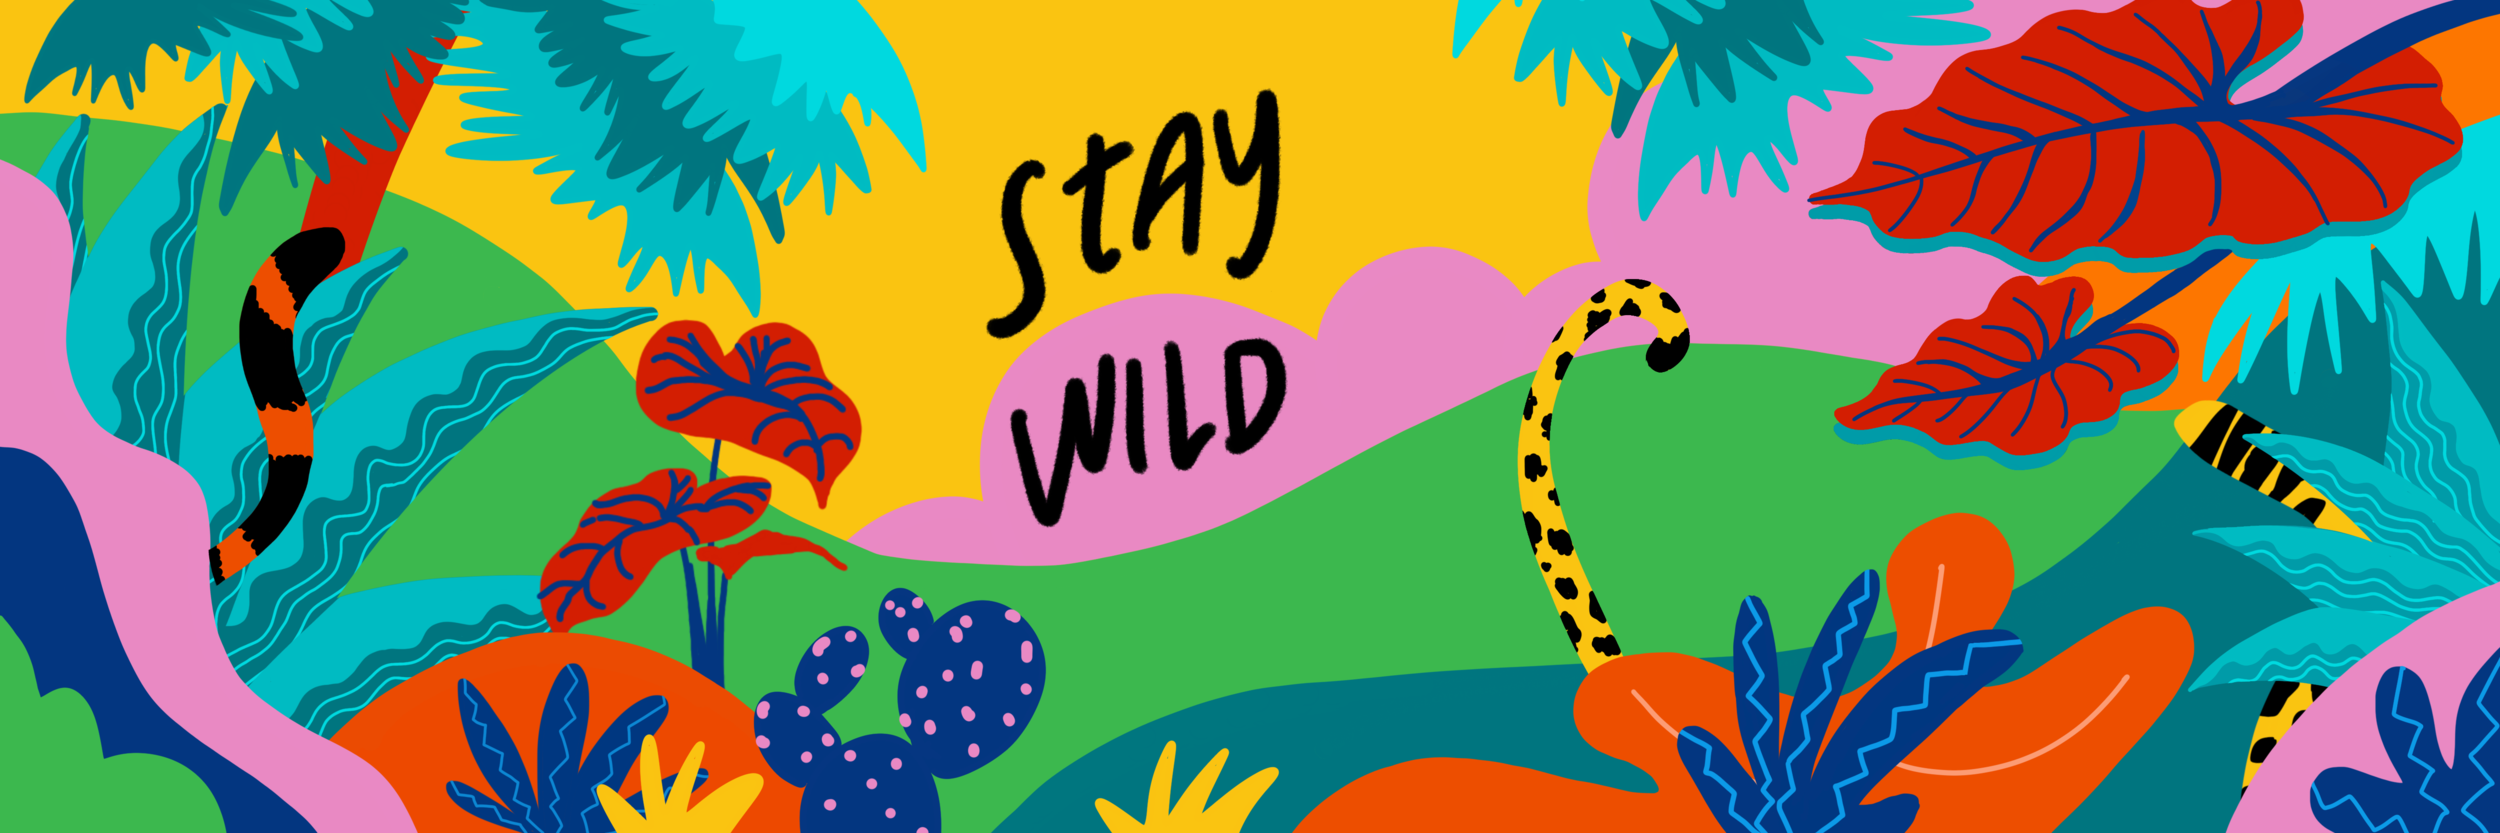 Stay Wild-Full Image.png